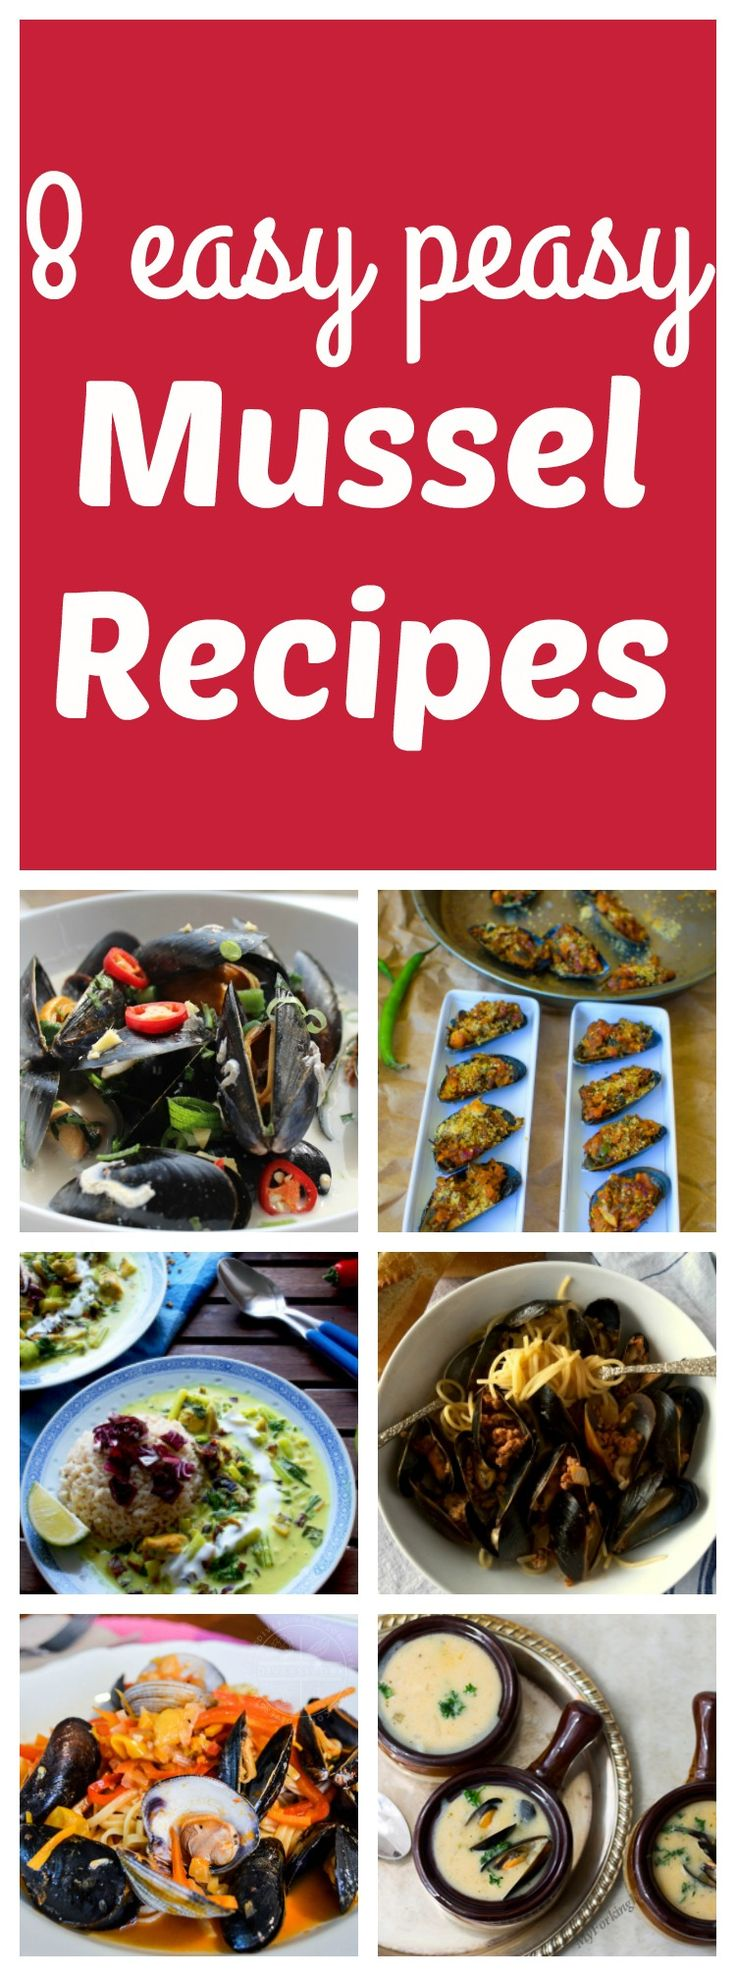 8 Easy Mussel Recipes